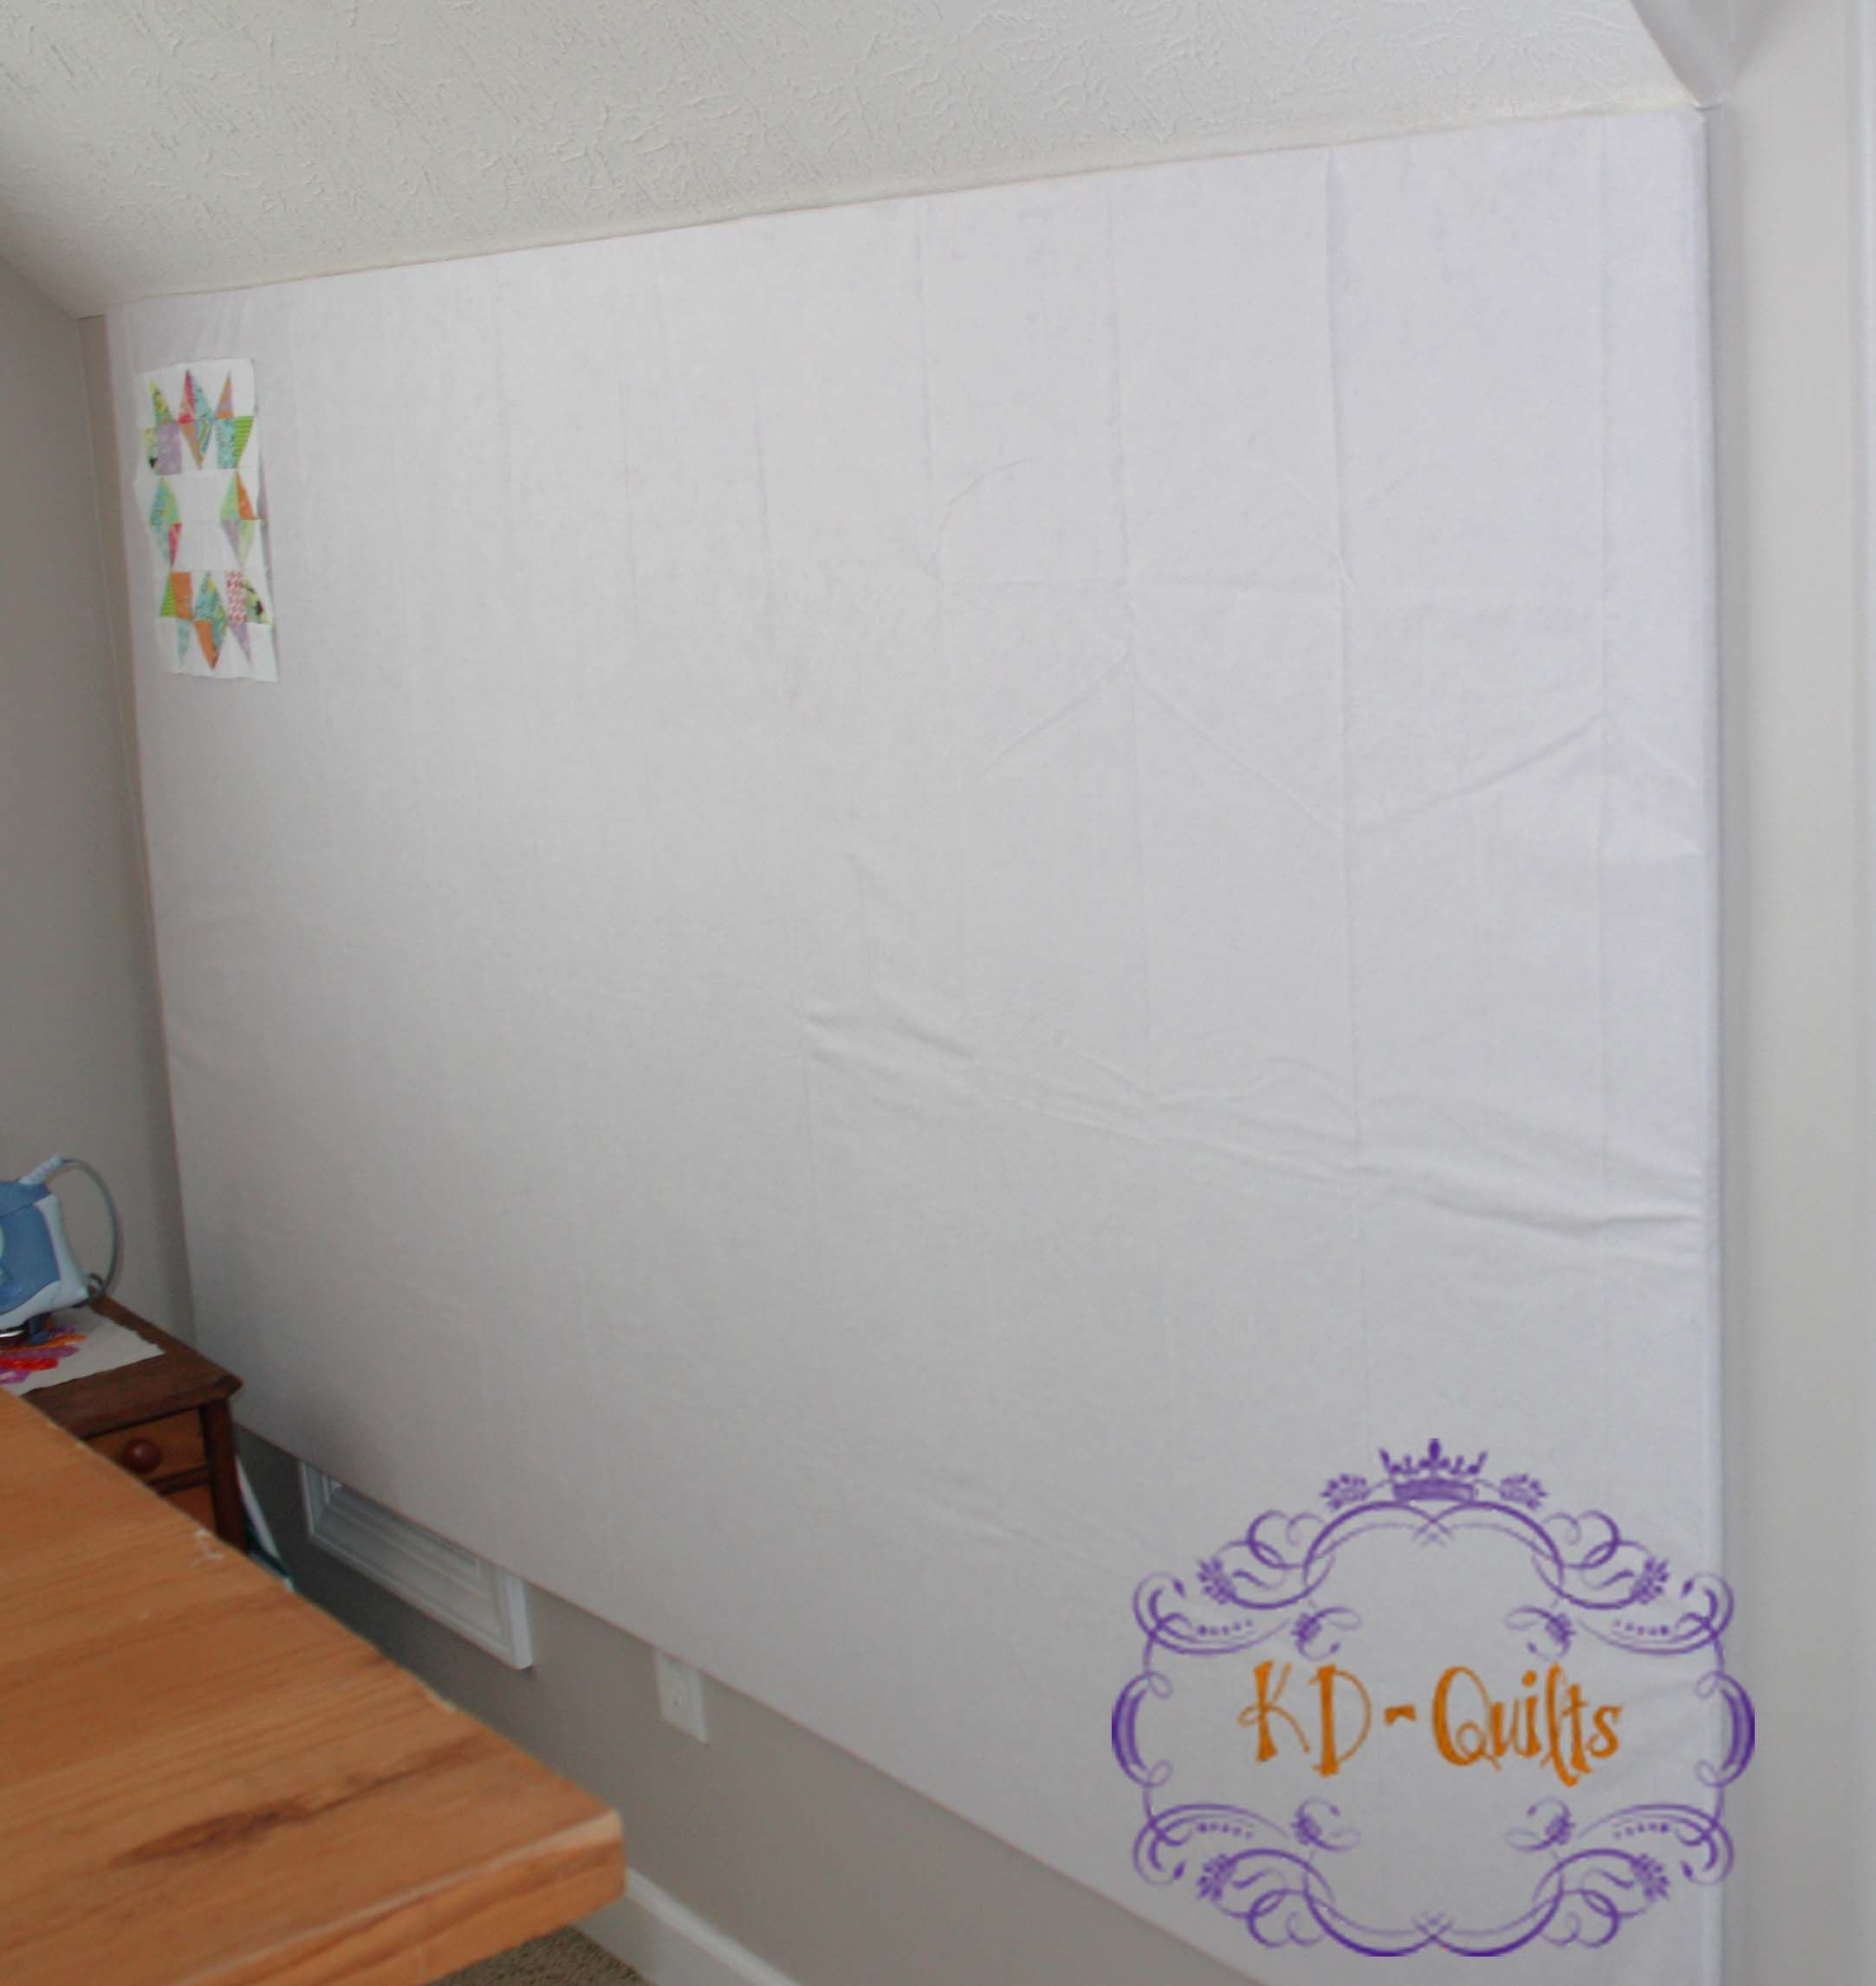 Design Wall For Under 20 Using 6 8 Piece Of Insulation Foam Core Board From Home Depot A Rectangular Vinyl Tabl Quilt Design Wall Quilting Room Quilt Retreat